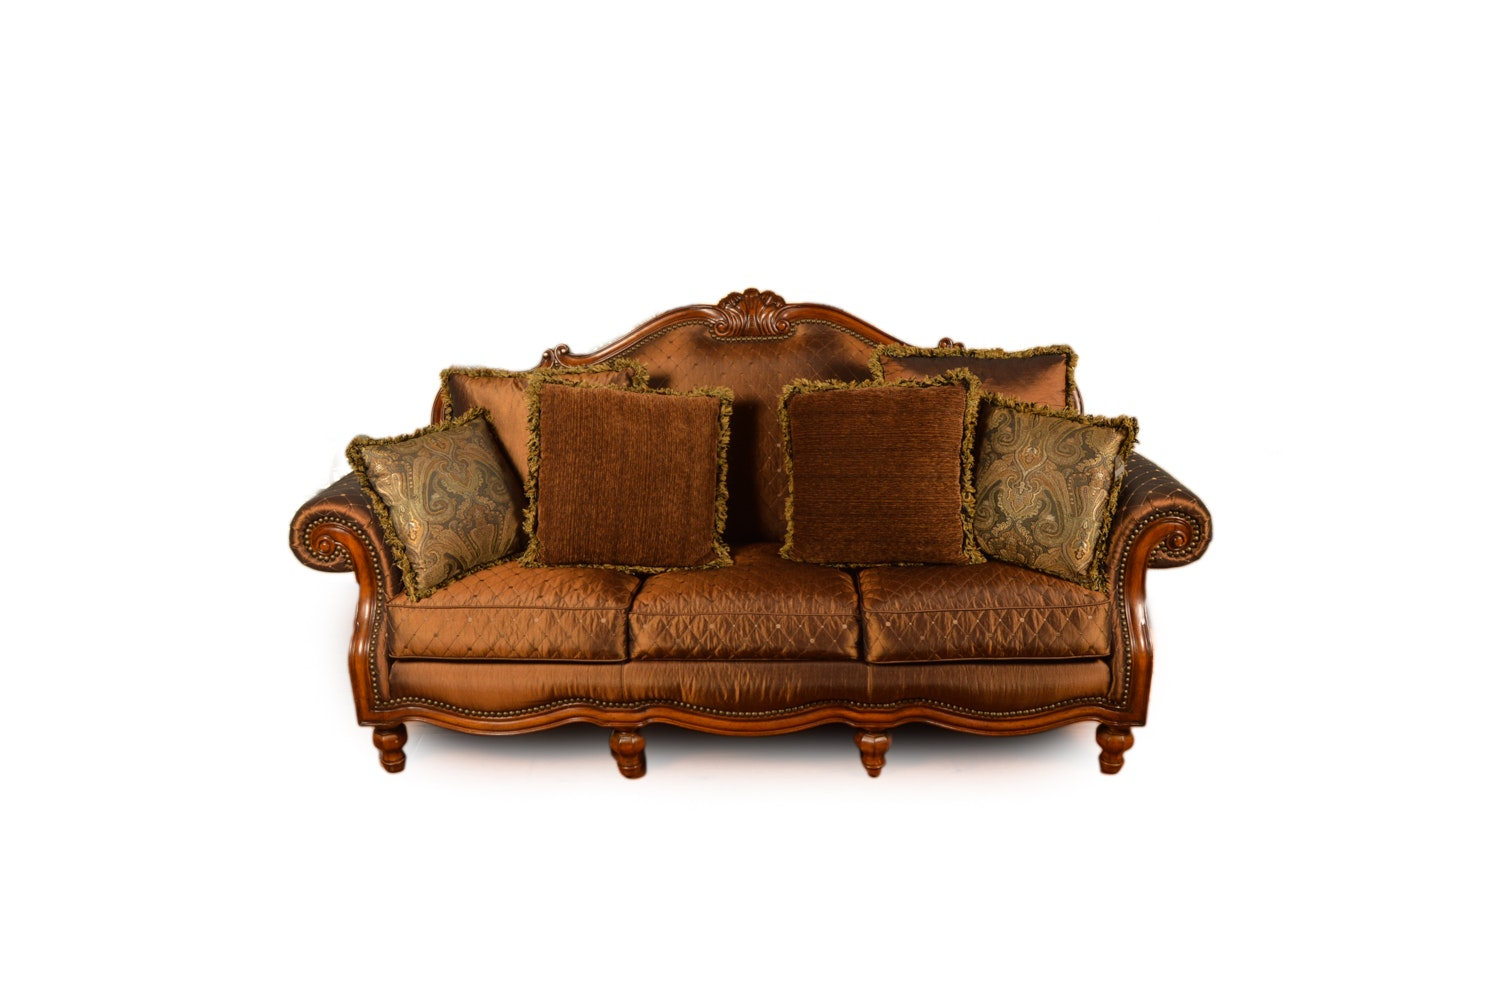 Italian Style Upholstered Sofa by Thomasville